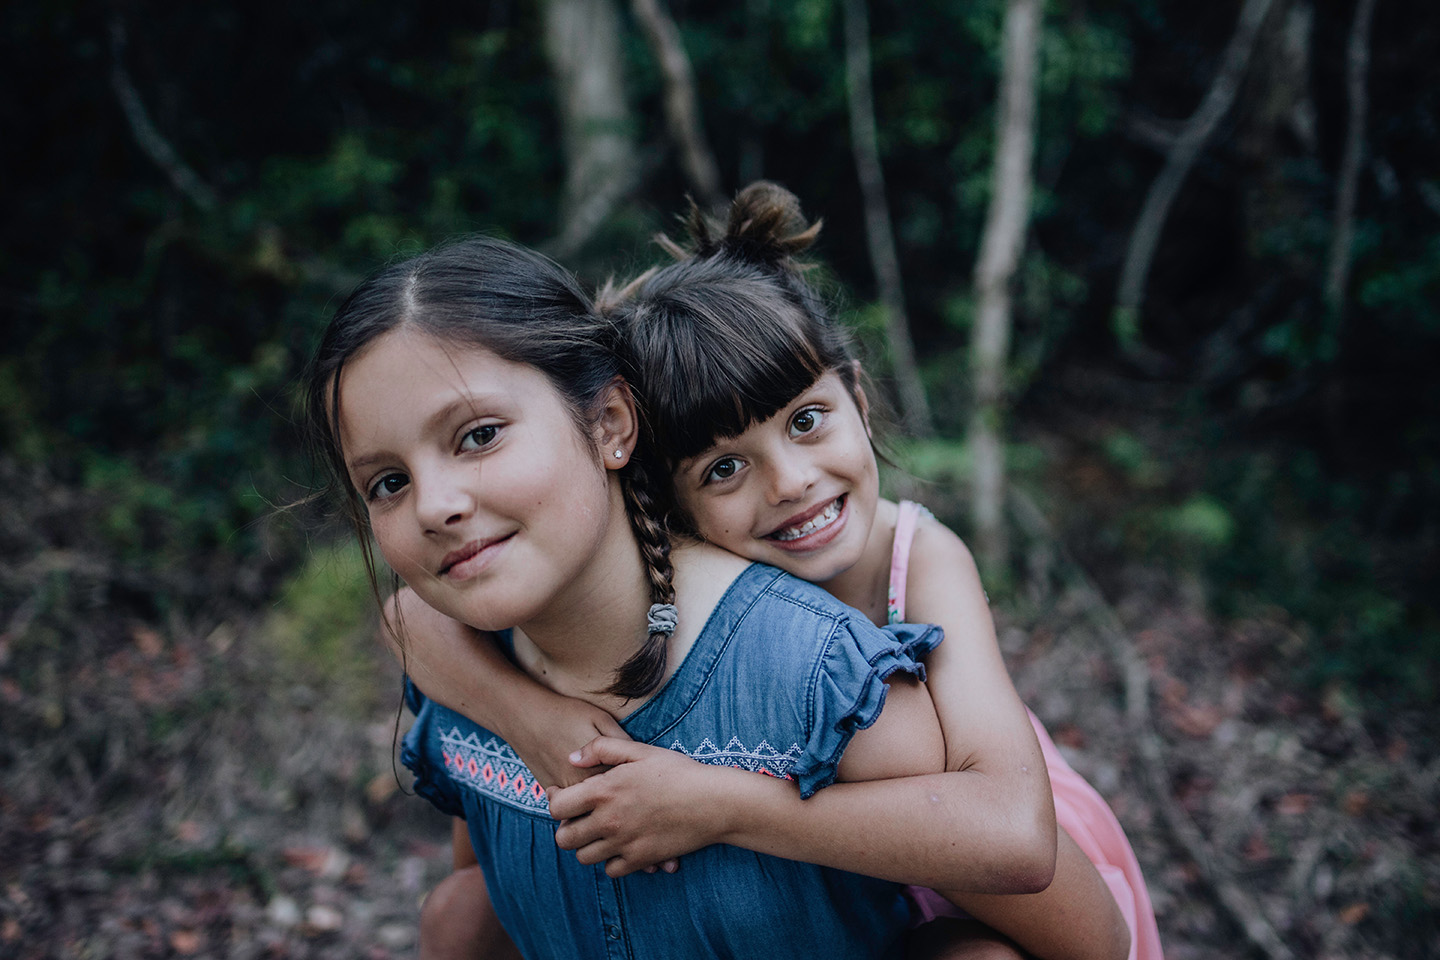 Sisters, piggy back, family photography, children photography,Alice Payne photography